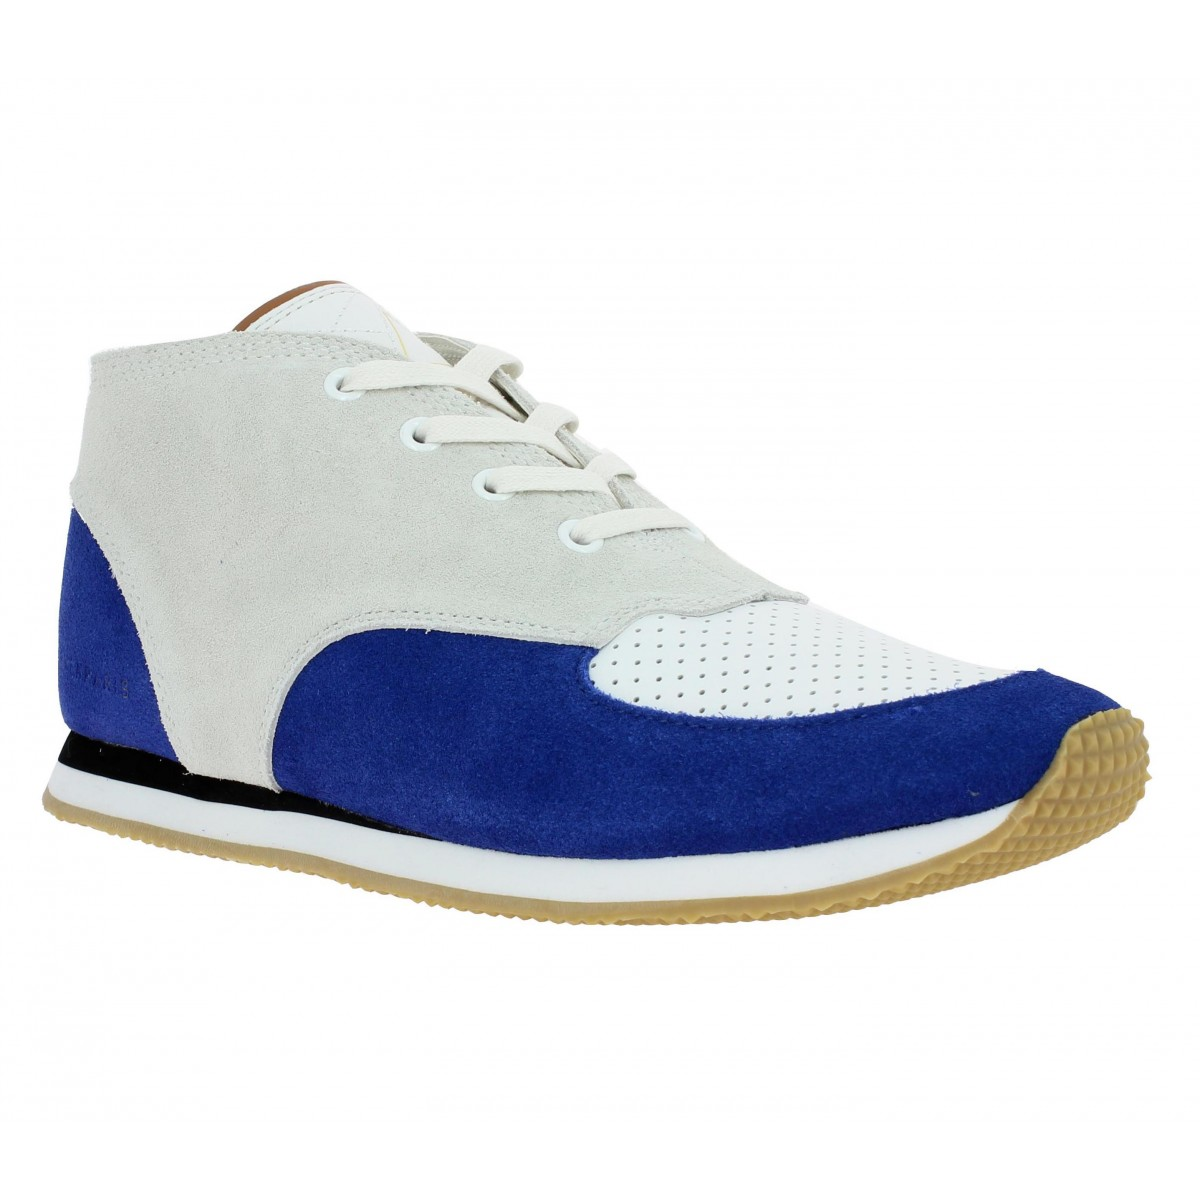 Bottines ELEVEN PARIS Runsuede velours Femme Off White + Bleu